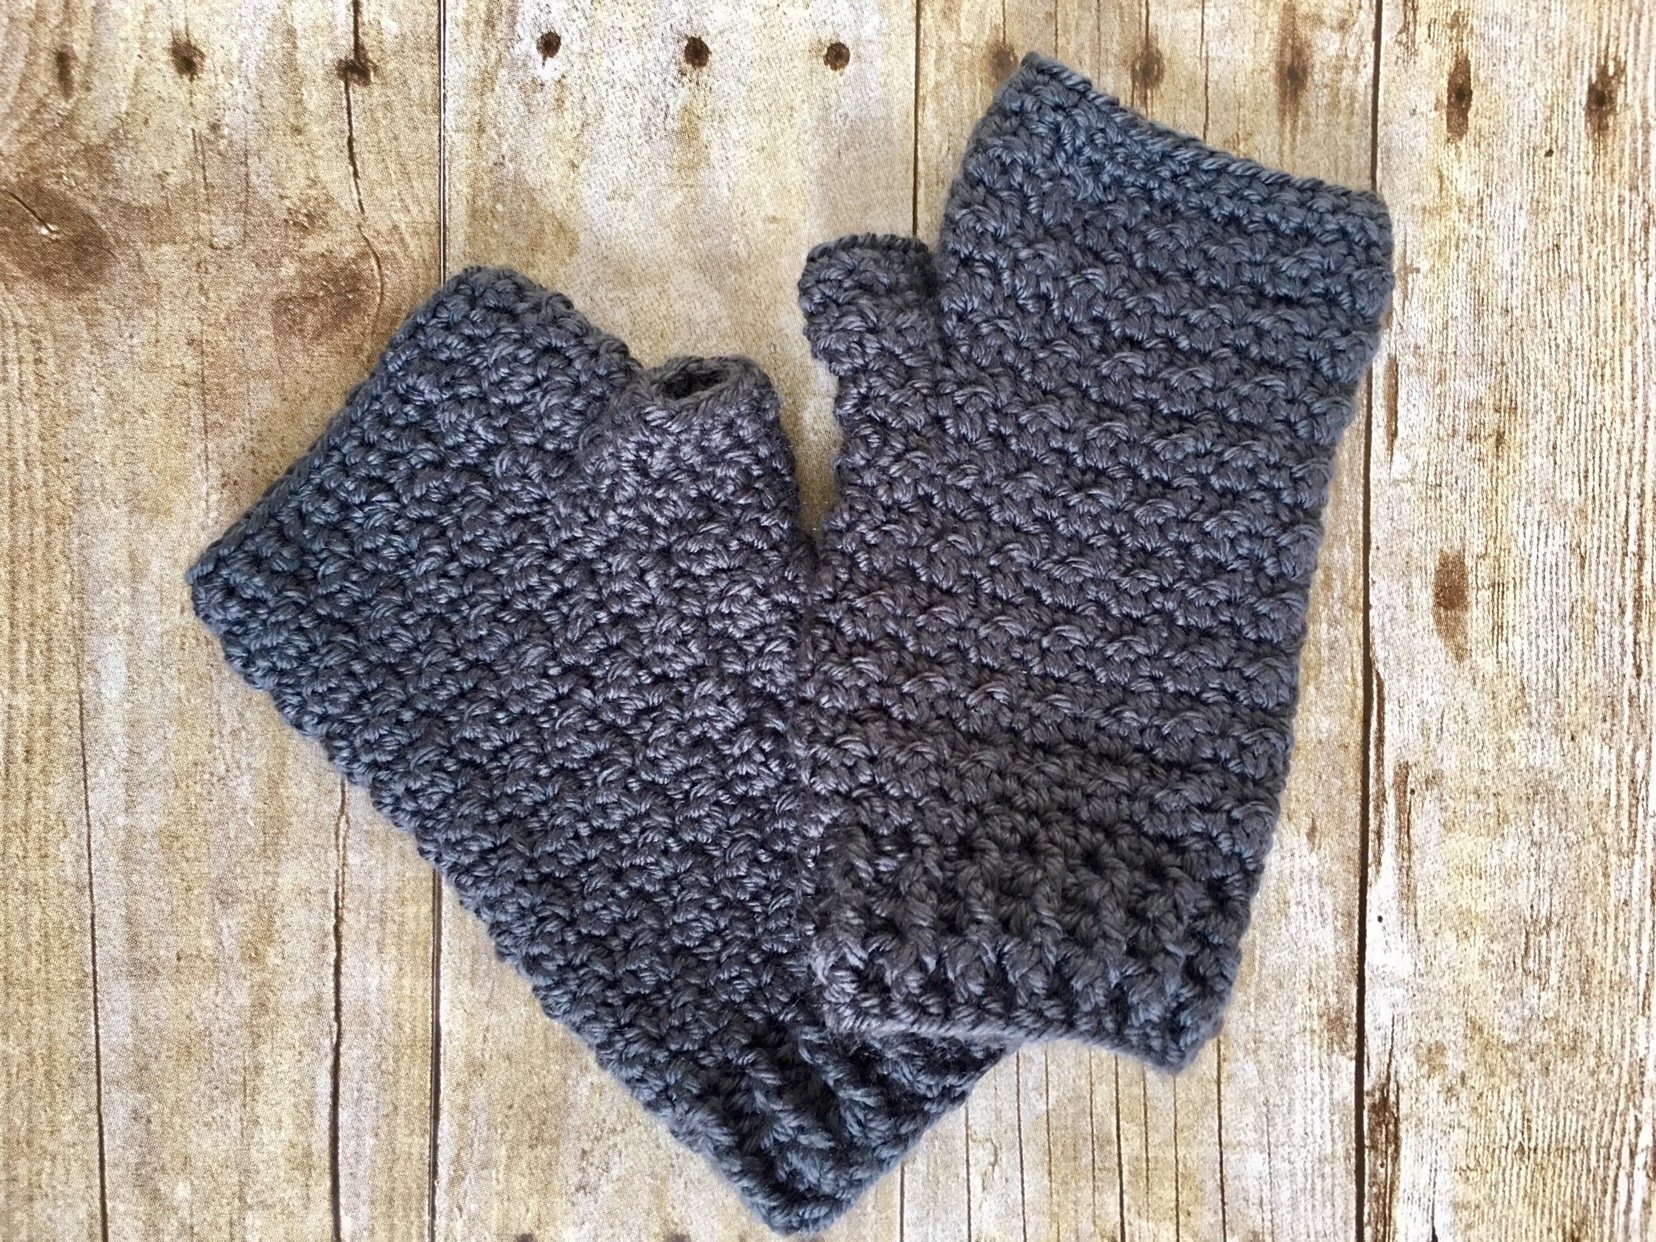 Lemon Peel Fingerless Gloves - This list of 20 easy fingerless gloves crochet patterns is suitable for everyone, including males, females, adults, and children. #FingerlessGlovesCrochetPatterns #CrochetFingerlessGloves #CrochetPatterns